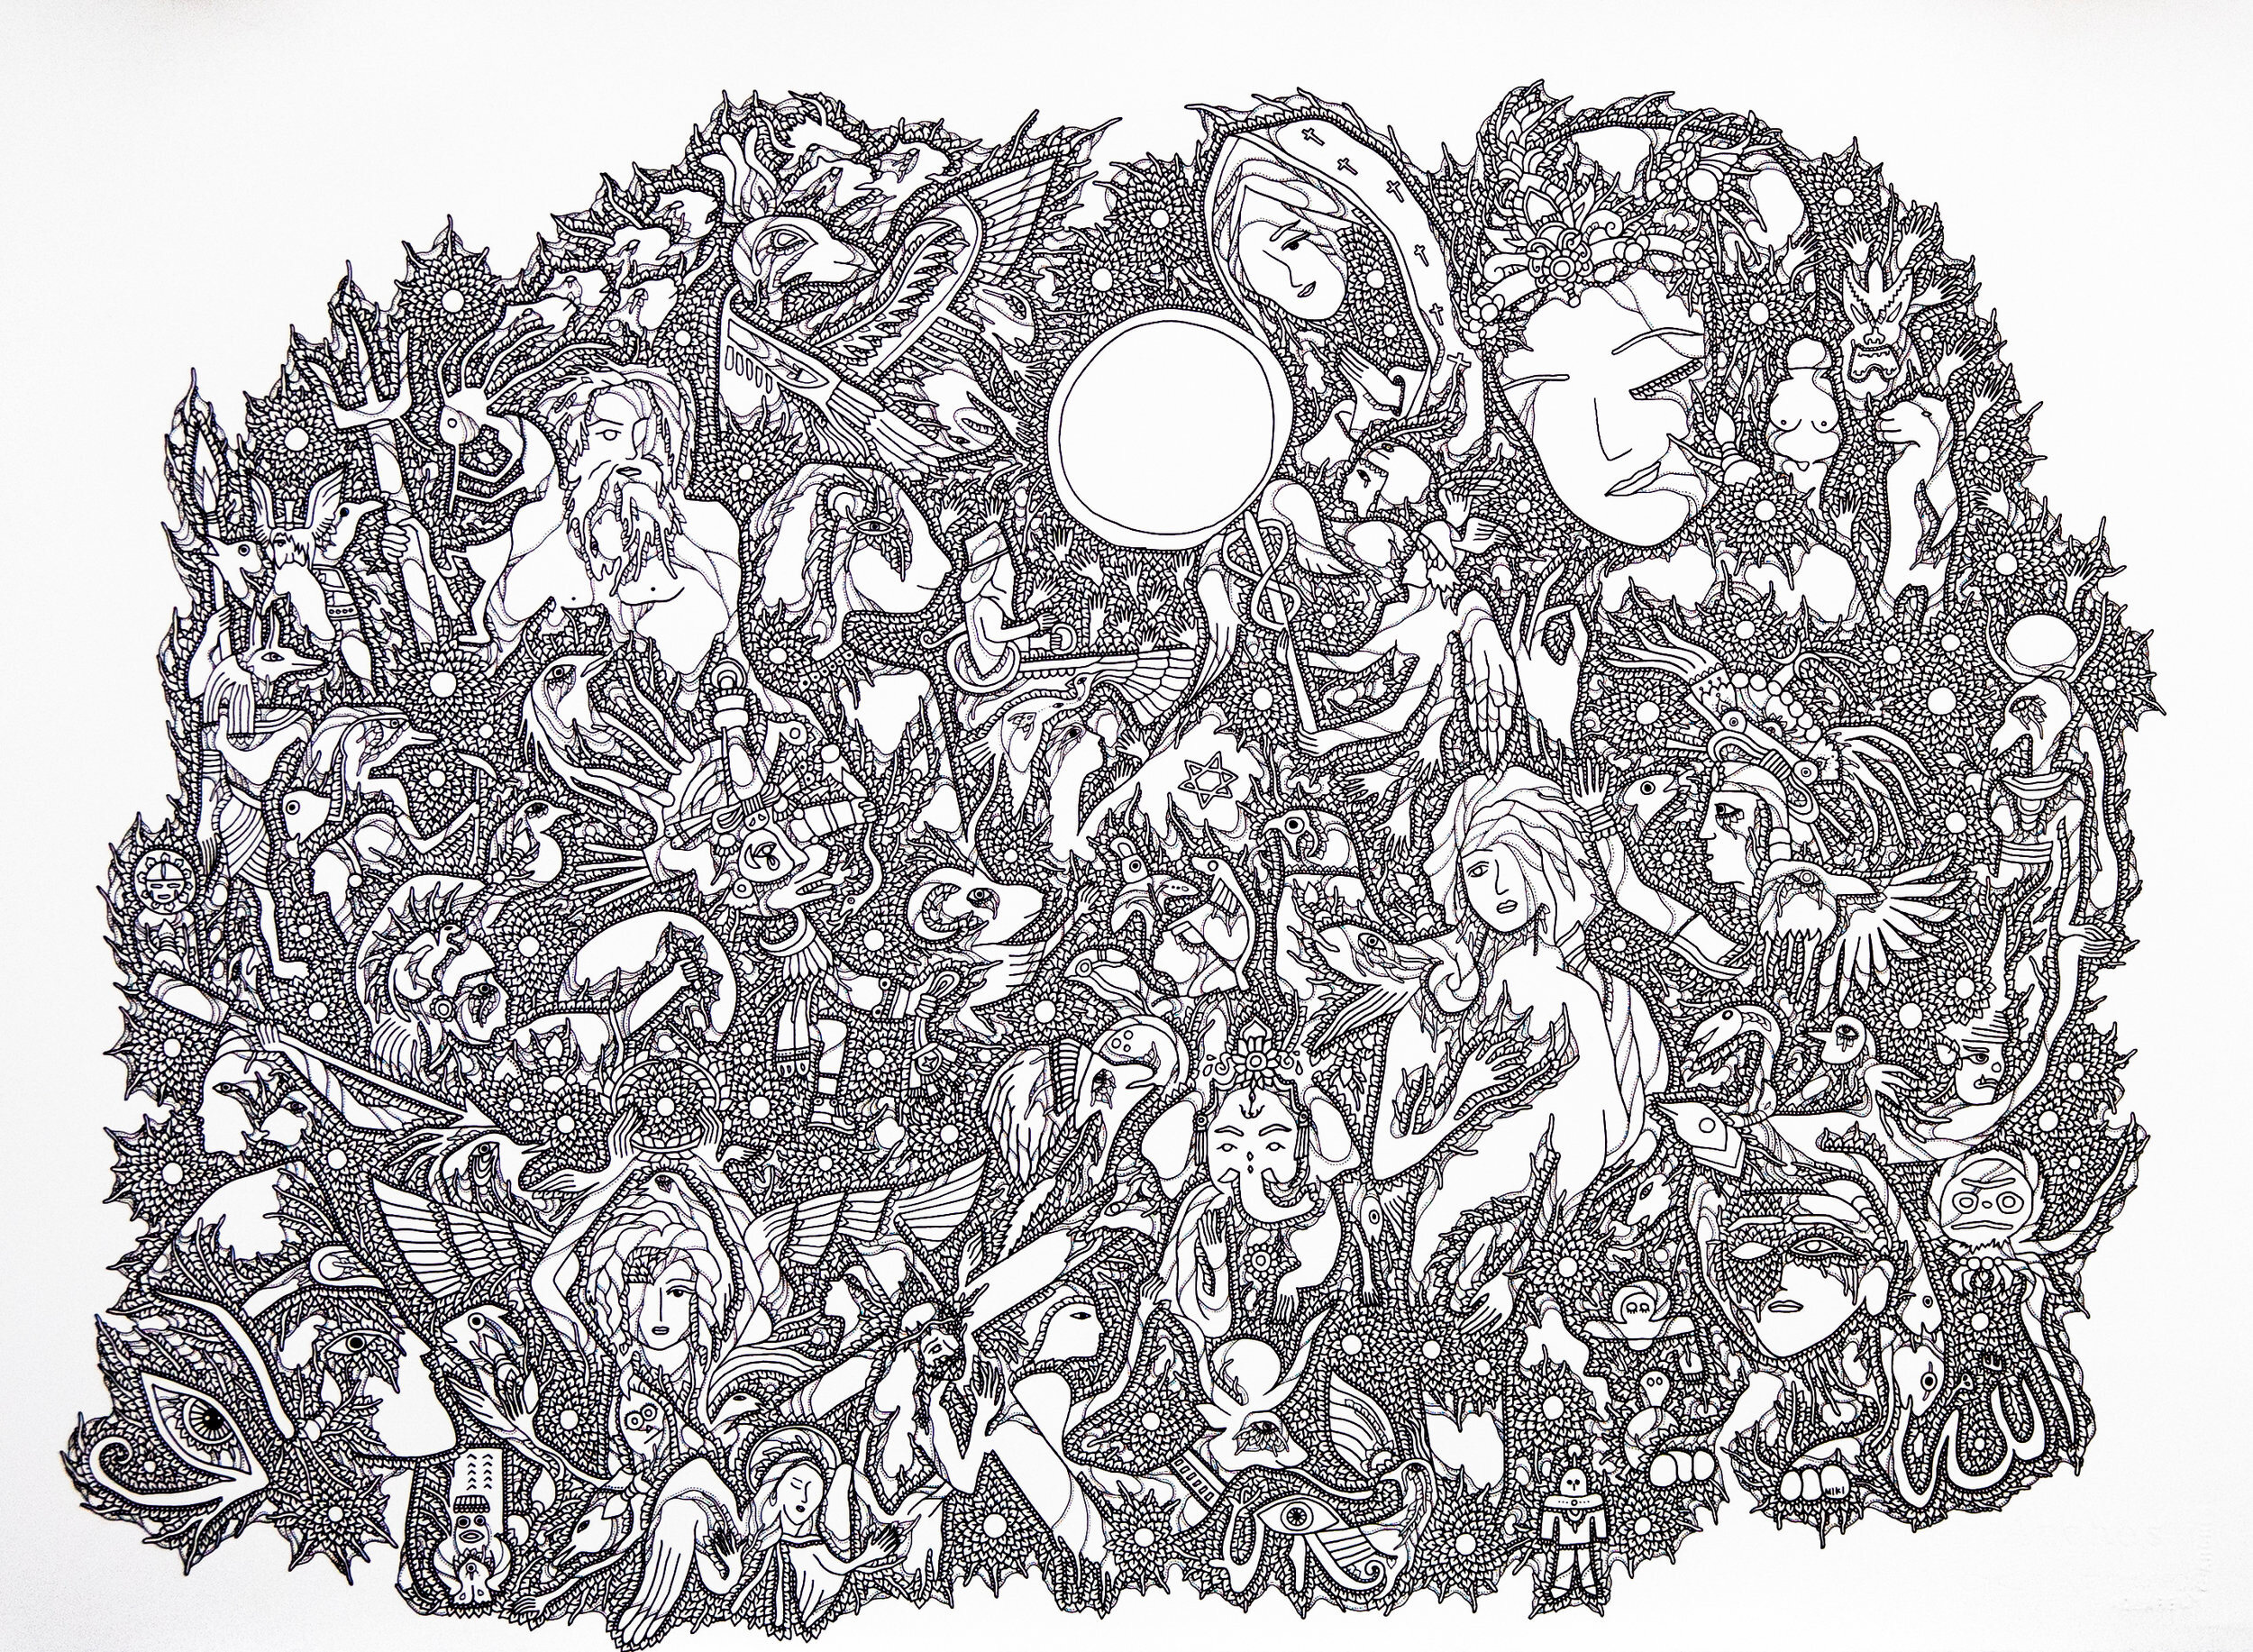 Gods as One (2017), Ink on paper  22.5 in x 30 in